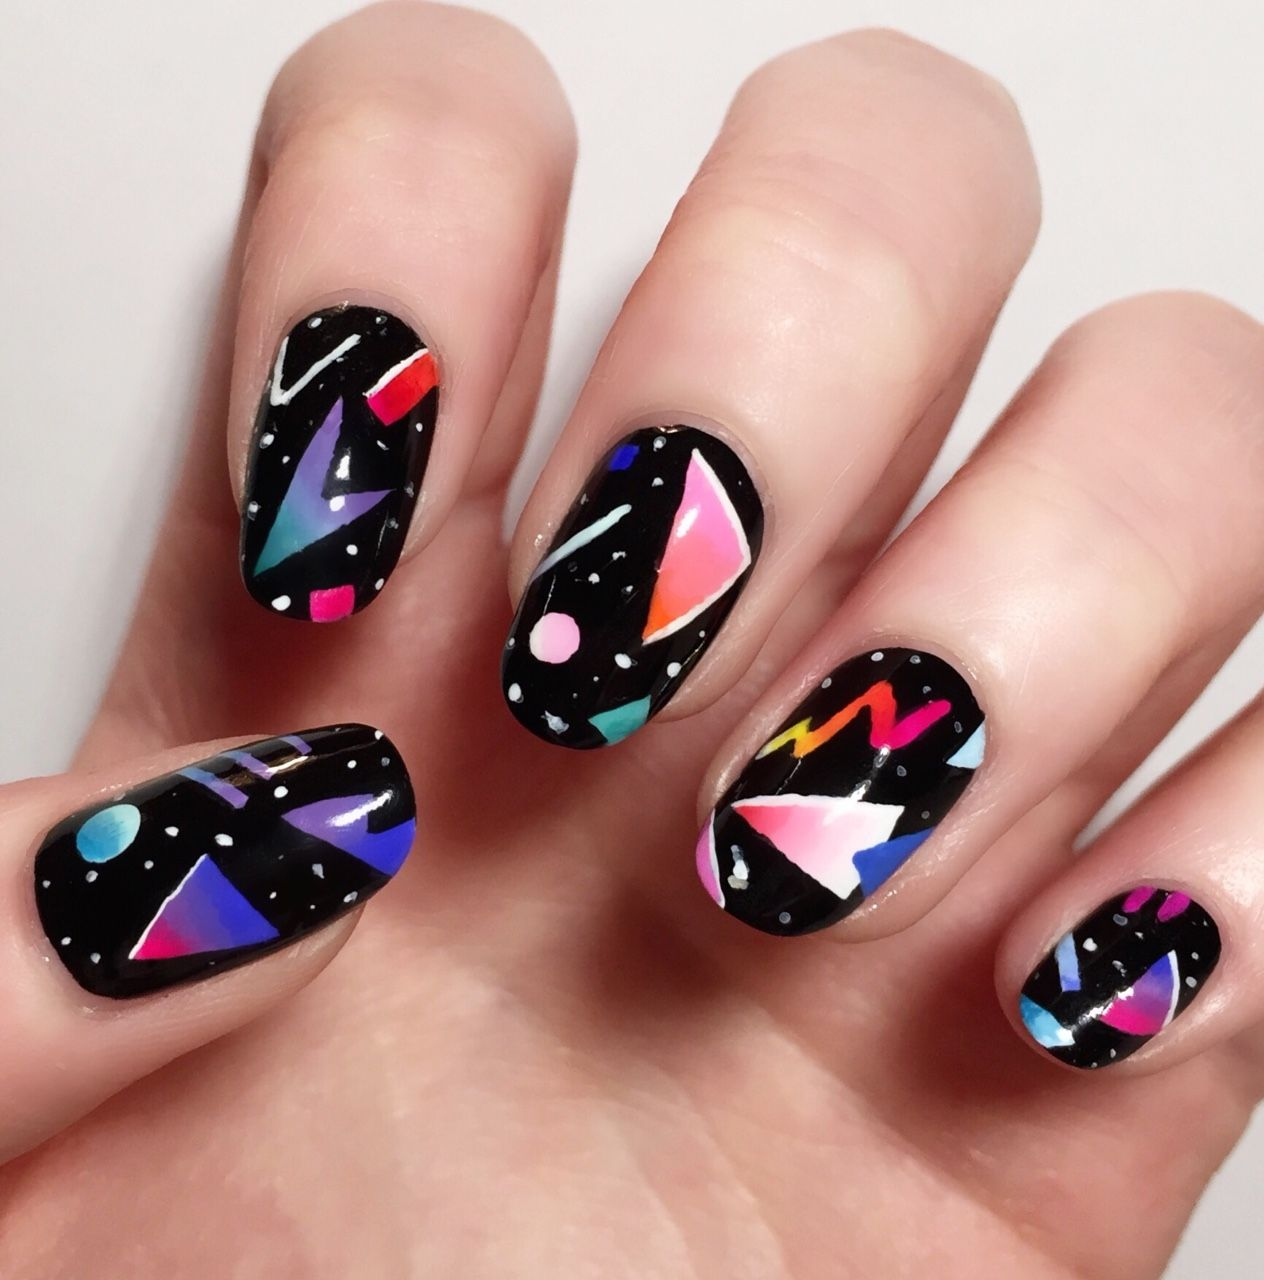 A Life Less Ordinary Iheartnails Blog Nail Art Inspired By Yoko